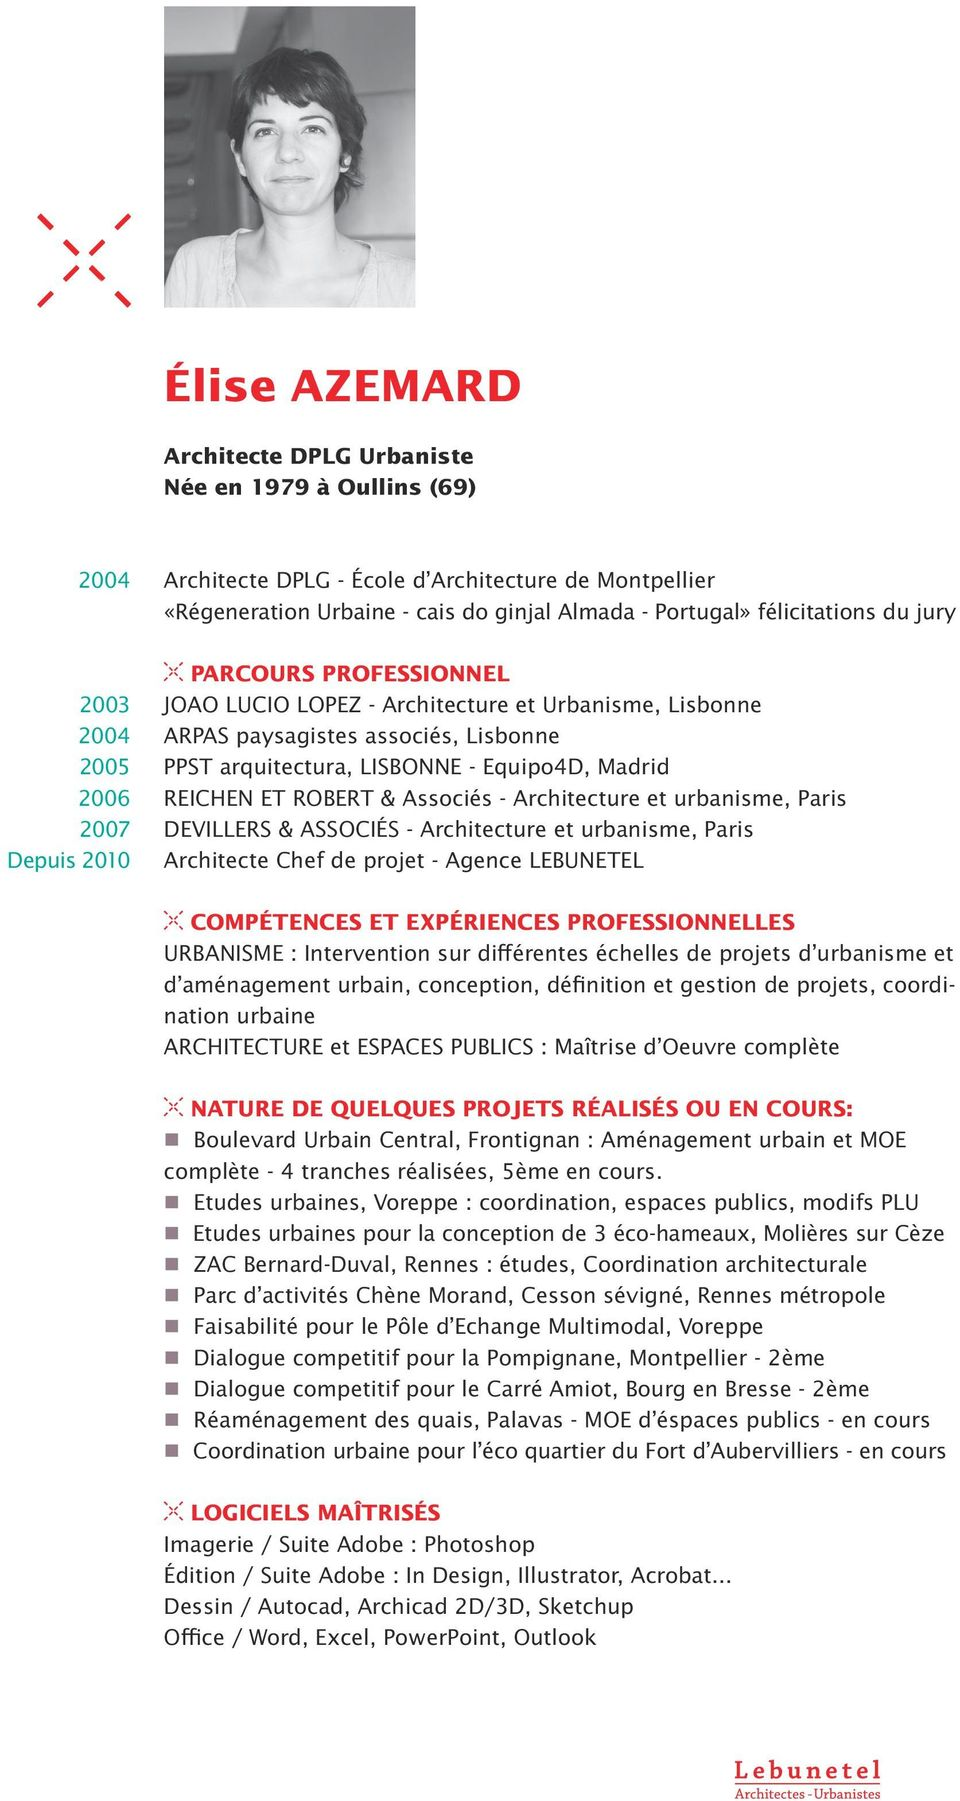 Cumulant 25 ans de projets riches et complexes de d fis for Dplg definition